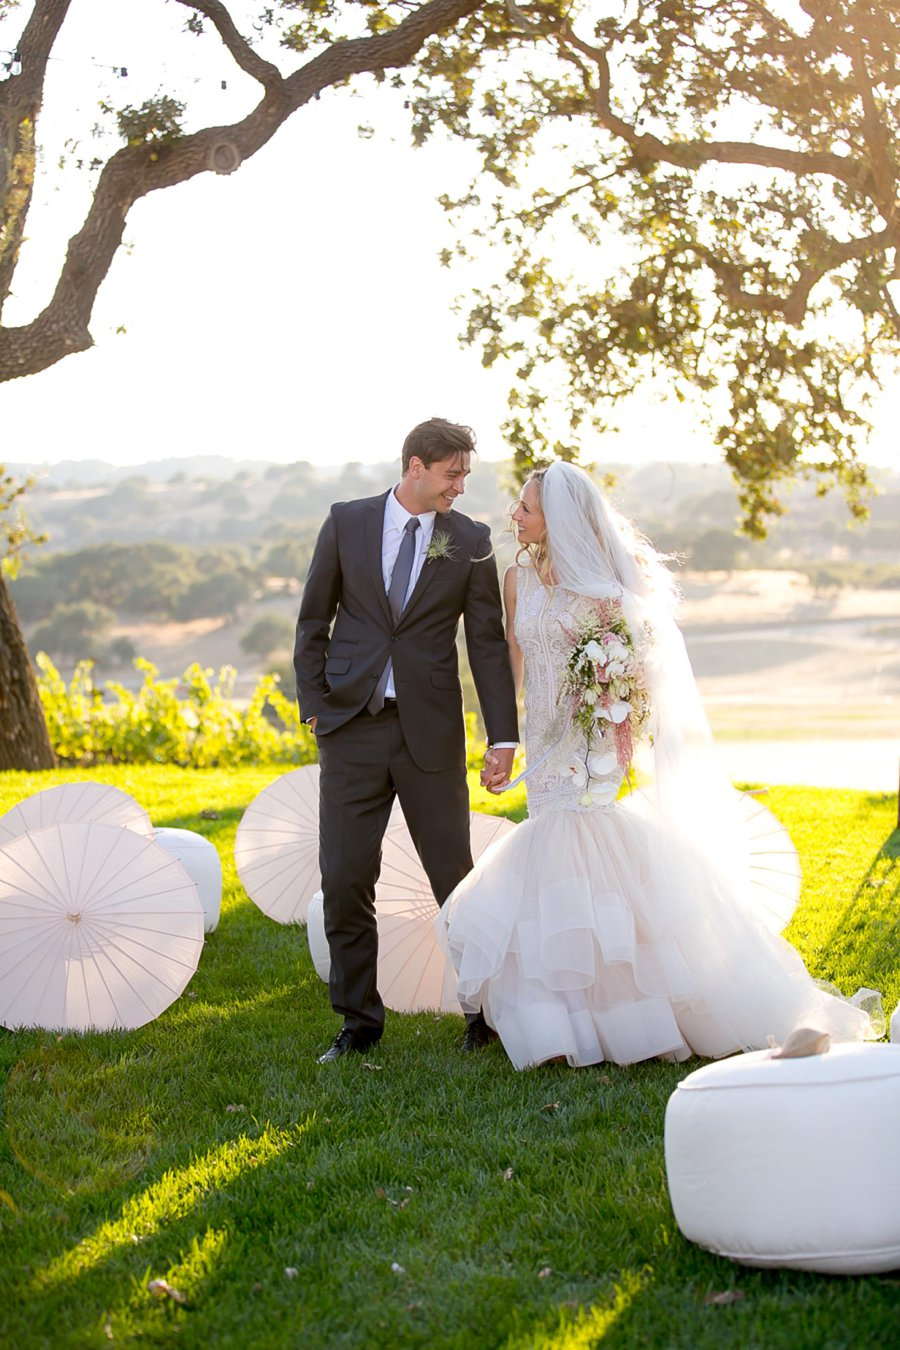 STOLPMANN VILLA AND VINEYARDS | LOS OLIVOS WEDDING PHOTOGRAPHER CHRIS HOLT PHOTOGRAPHY_049.jpg